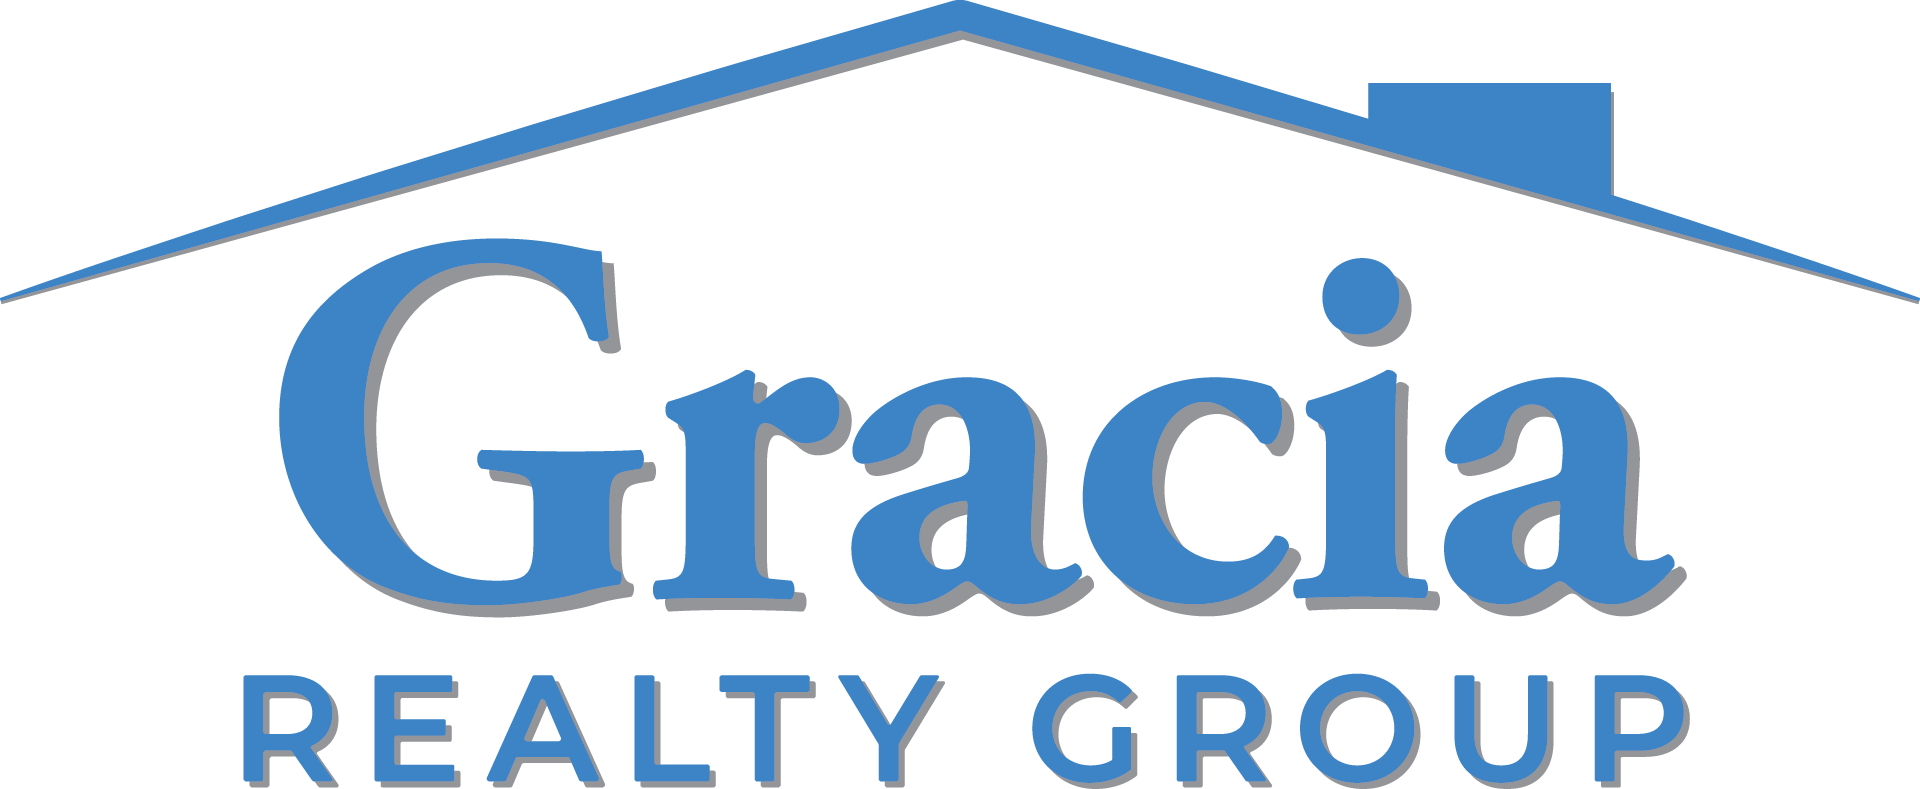 Gracia Realty Group